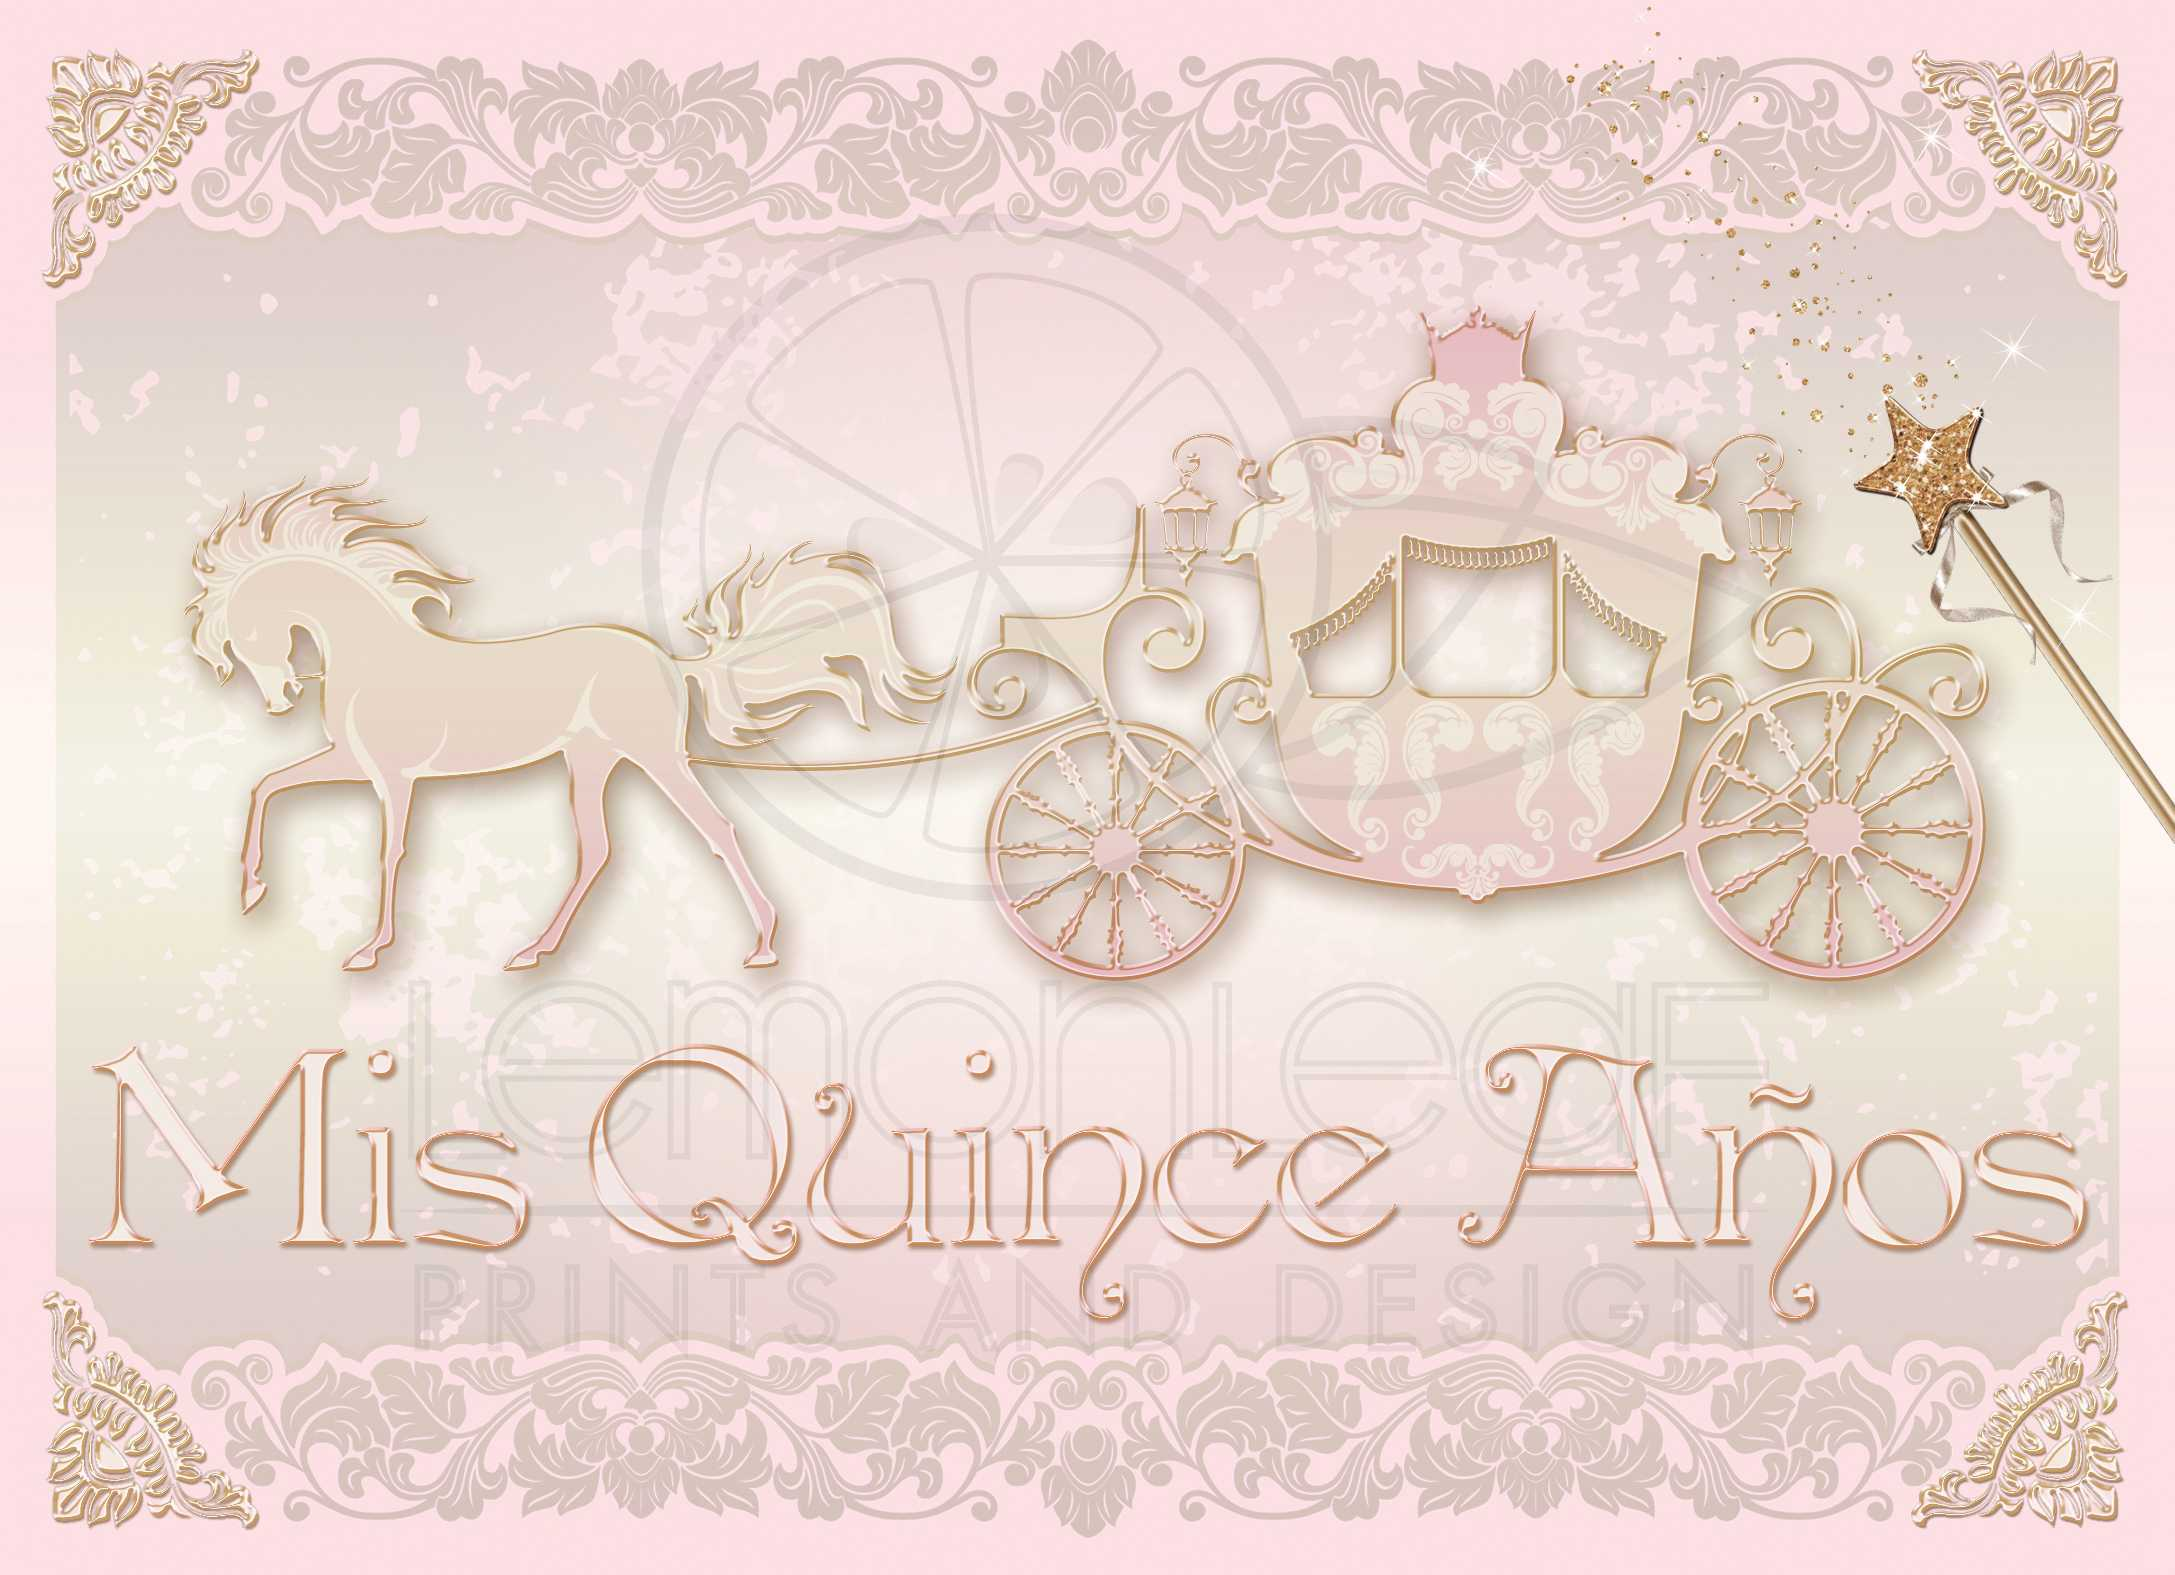 Photo Quinceanera Invite Blush Pink Gold Princess Carriage With Horse